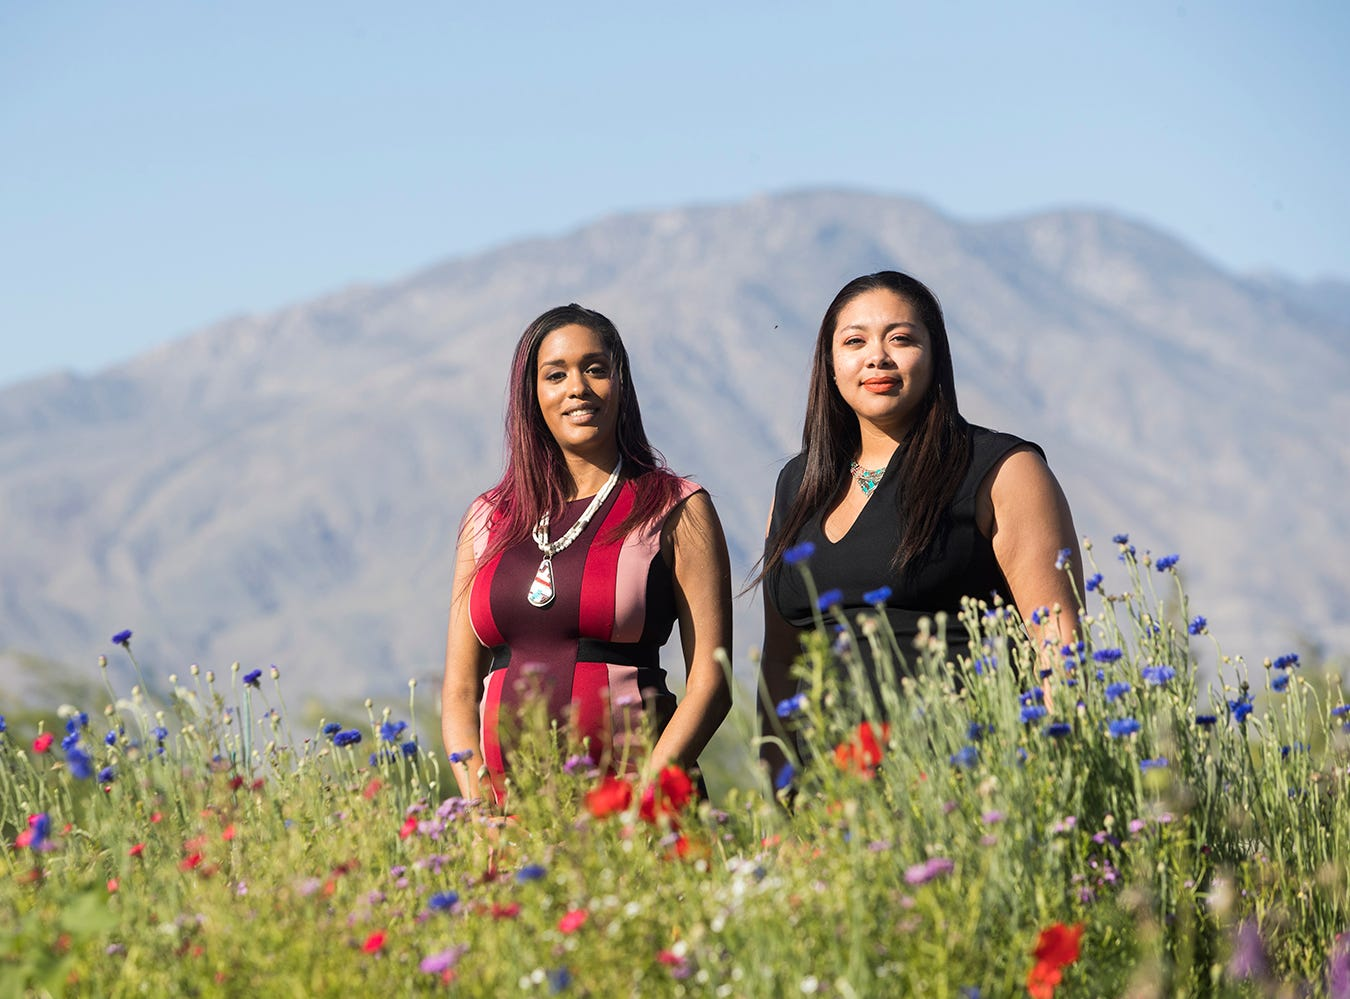 At left, Amanda Vance, the 32-year-old tribal chairof the Augustine Band of Cahuilla Indians is photographed on the reservation in late March 2019 with her cousin Victoria Martin, tribal council secretary.